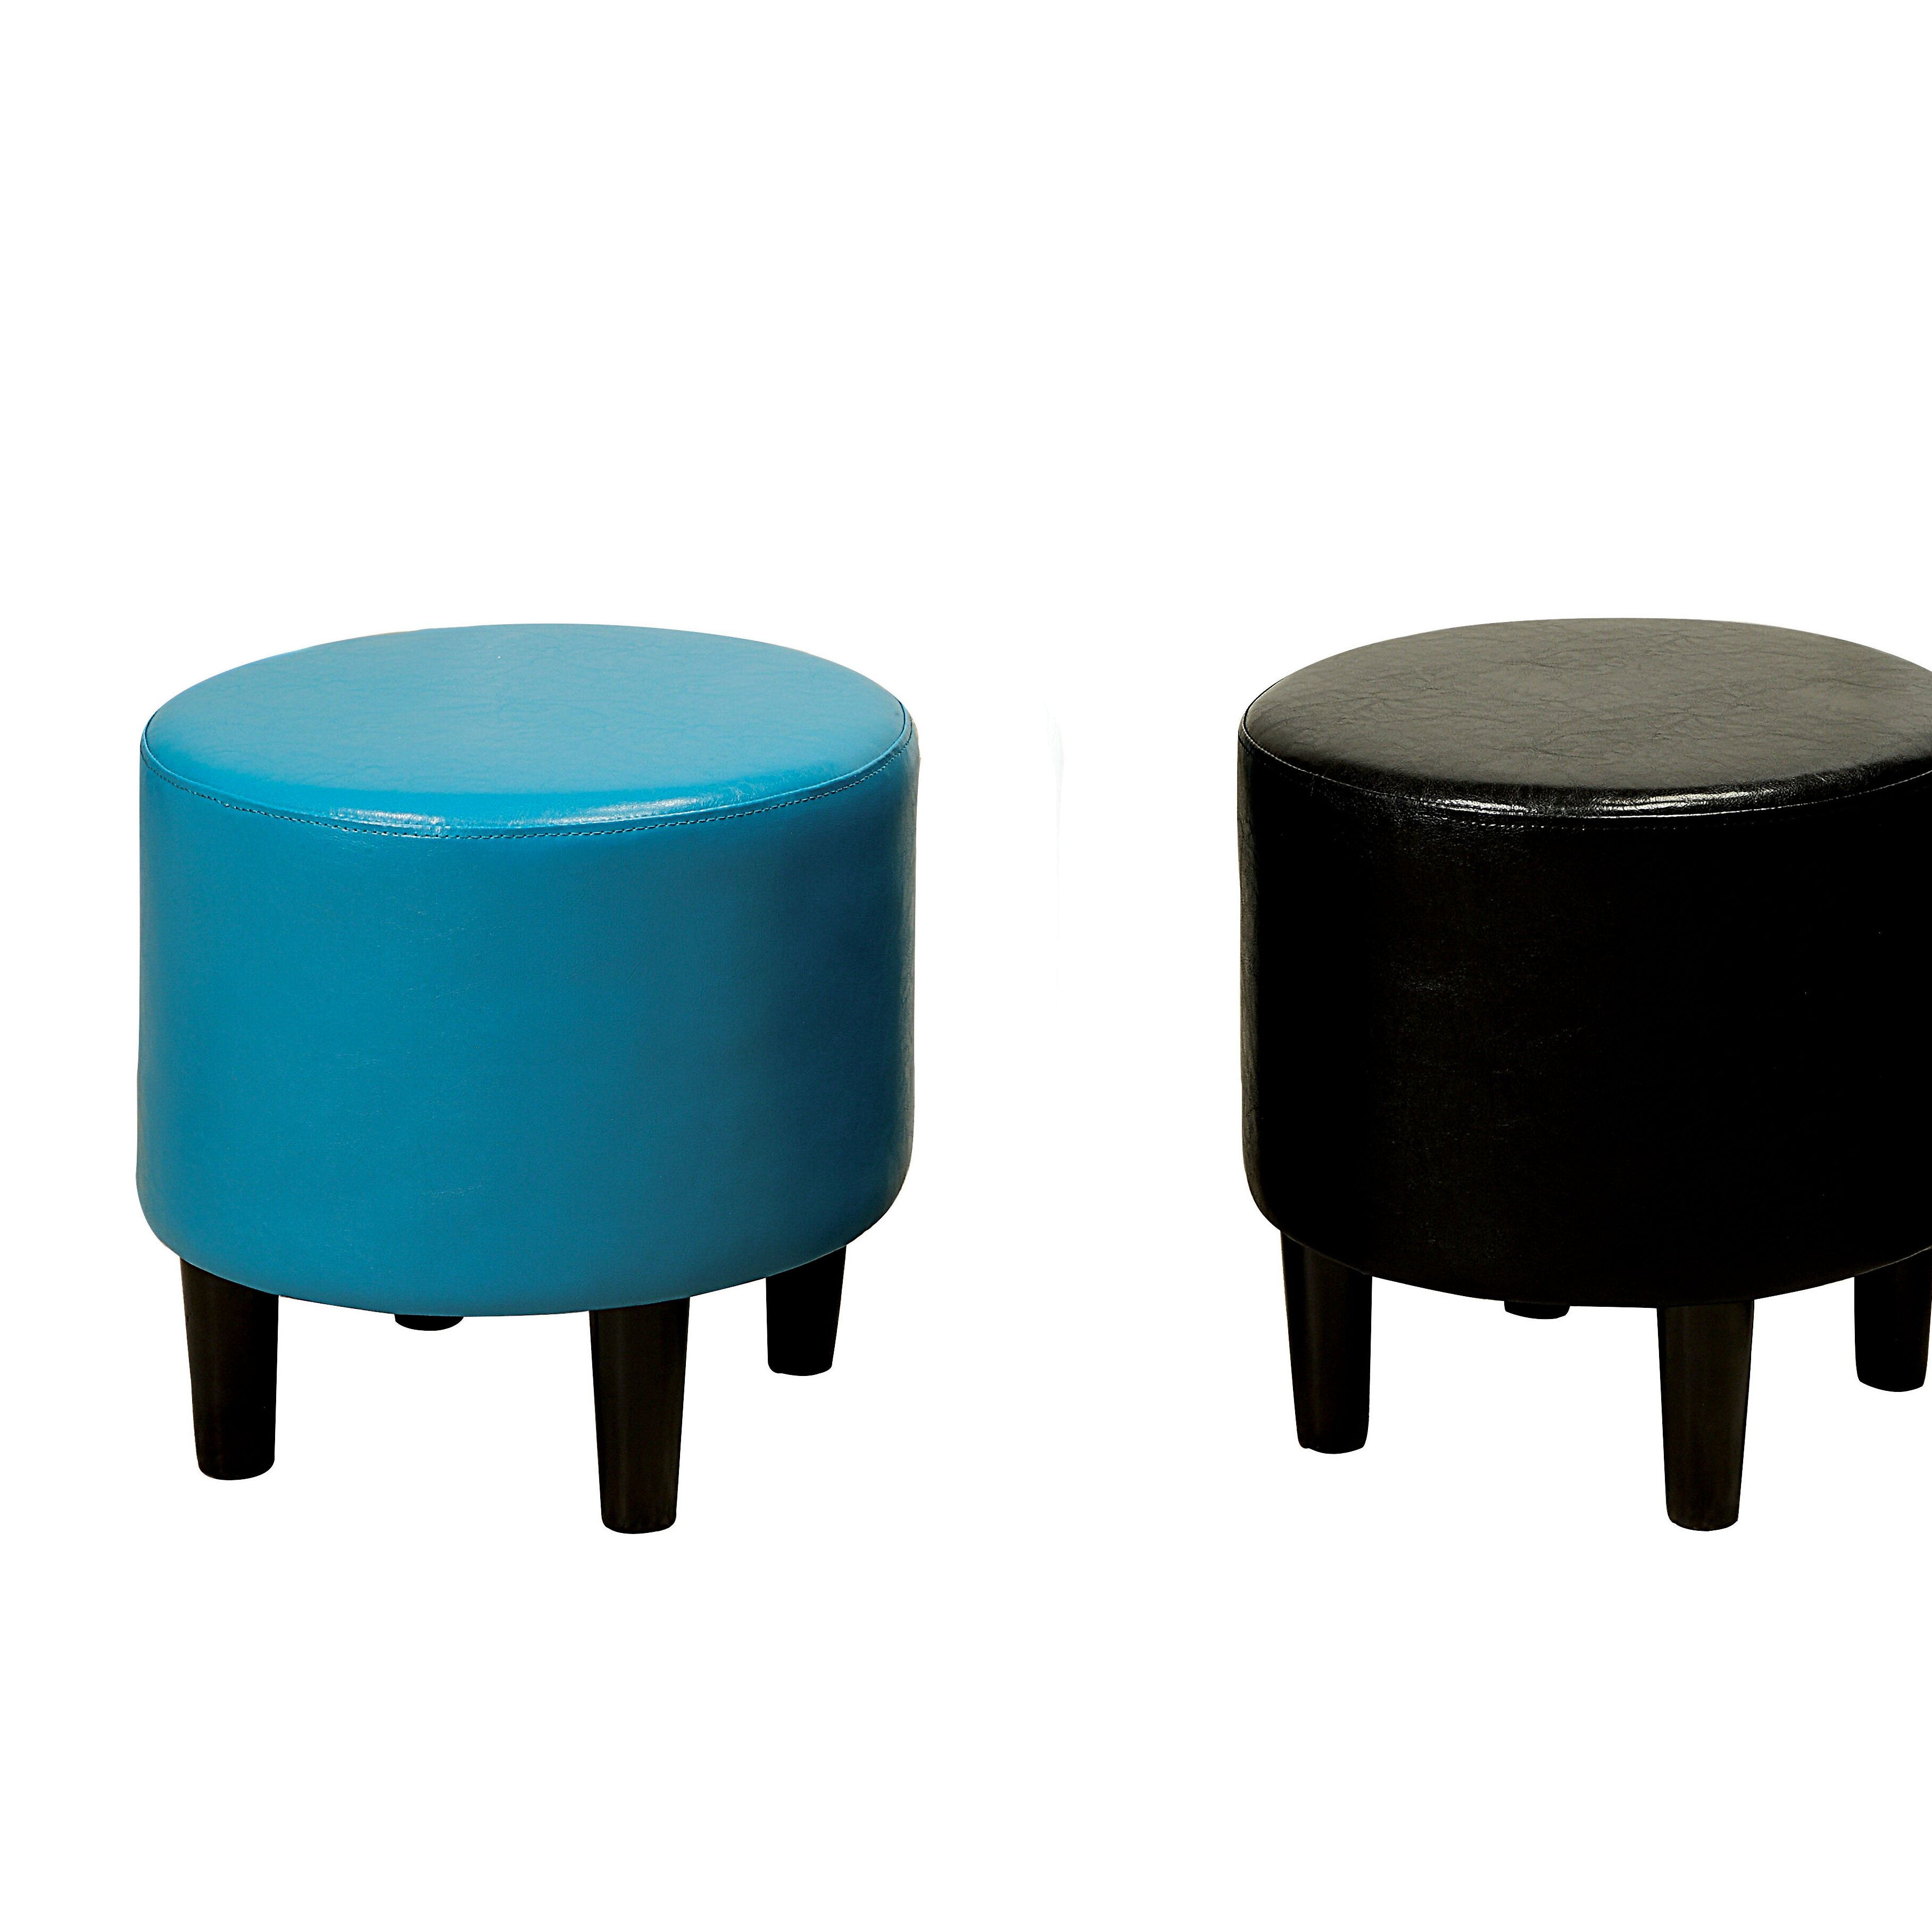 Round Leather Ottoman Design : Zipcode™ Design Sheila Ryker Leather Padded Round Ottoman & Reviews ...